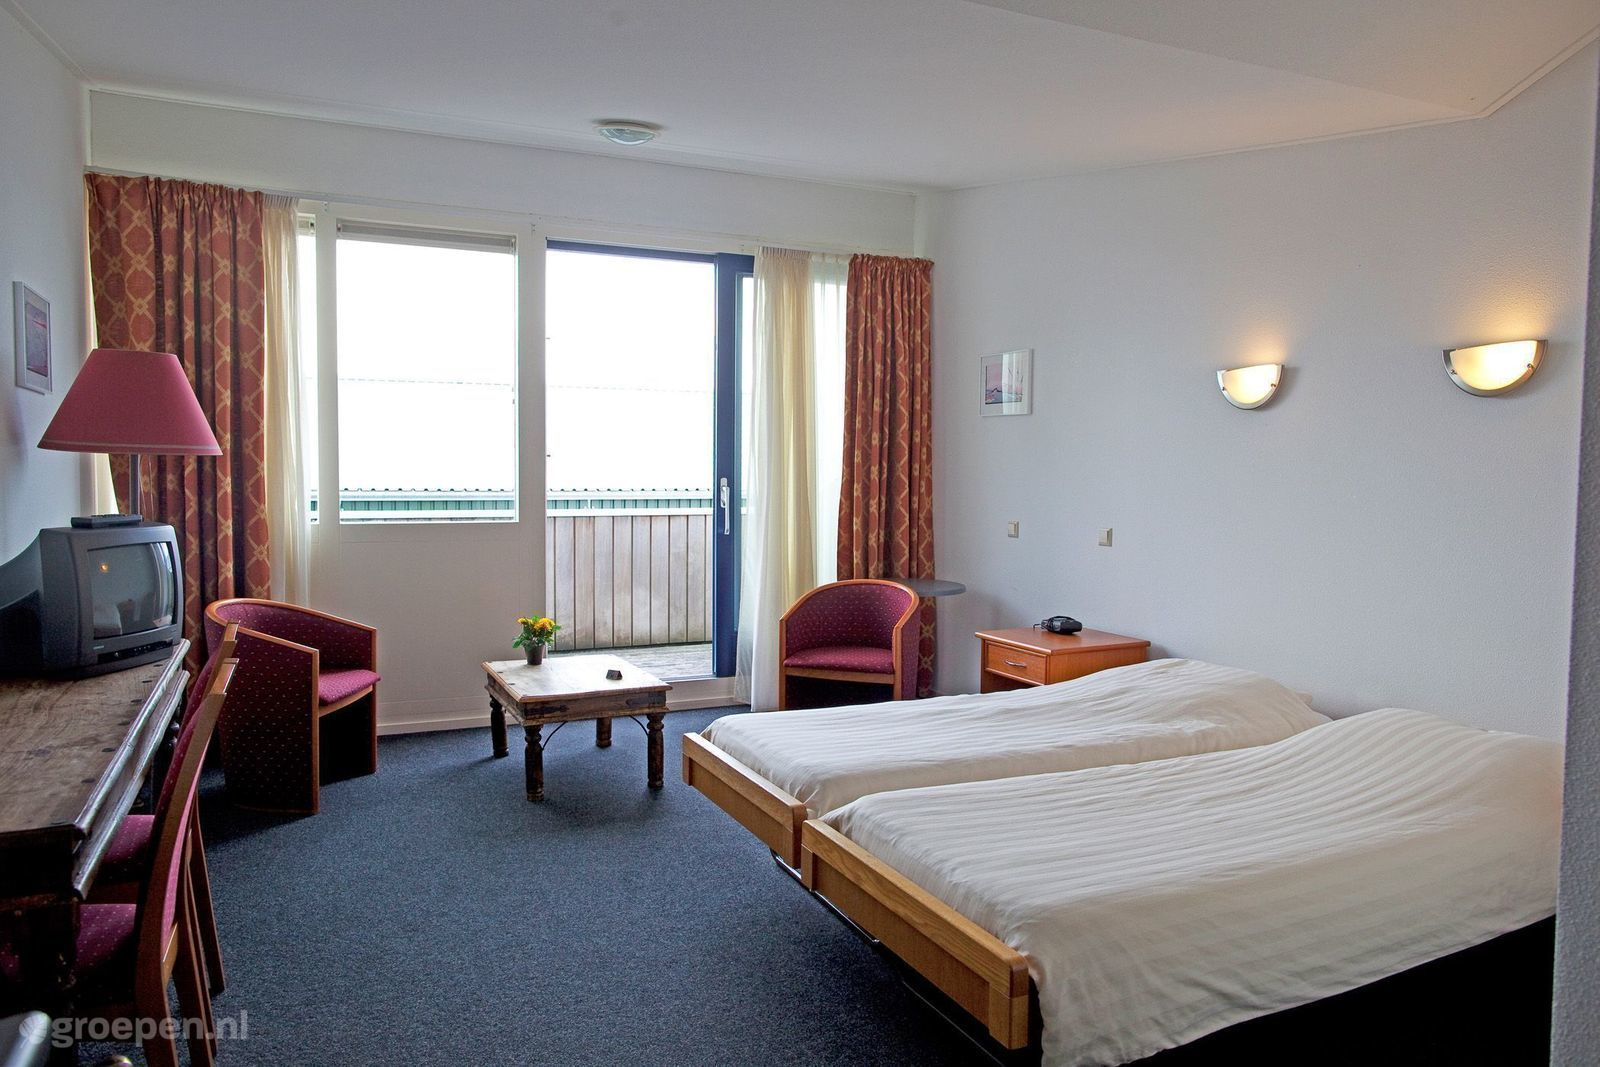 Group accommodation Vollenhove